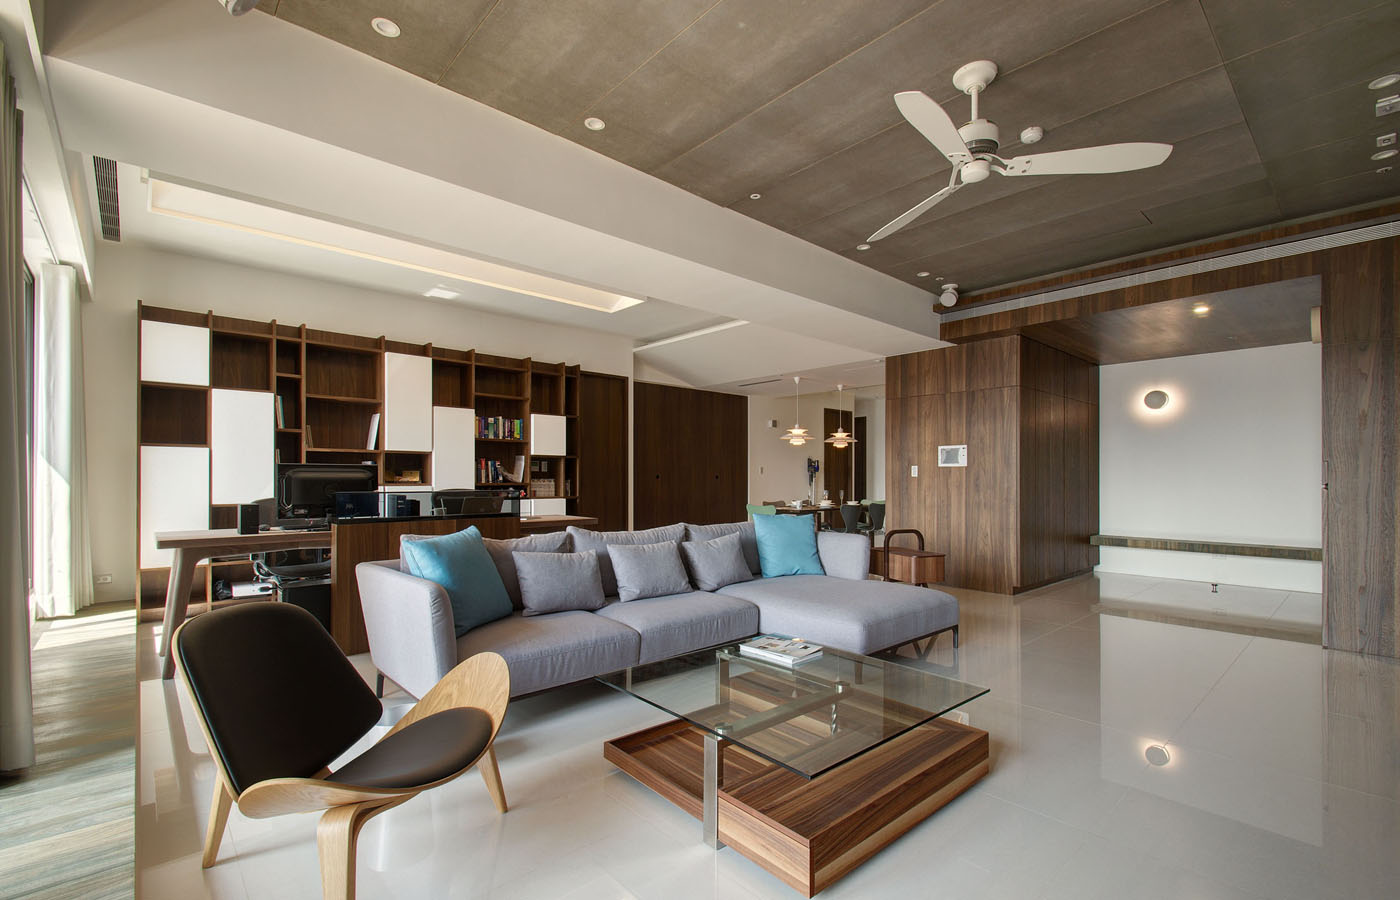 Modern apartment designs by phase6 design studio for Modern luxury apartment design